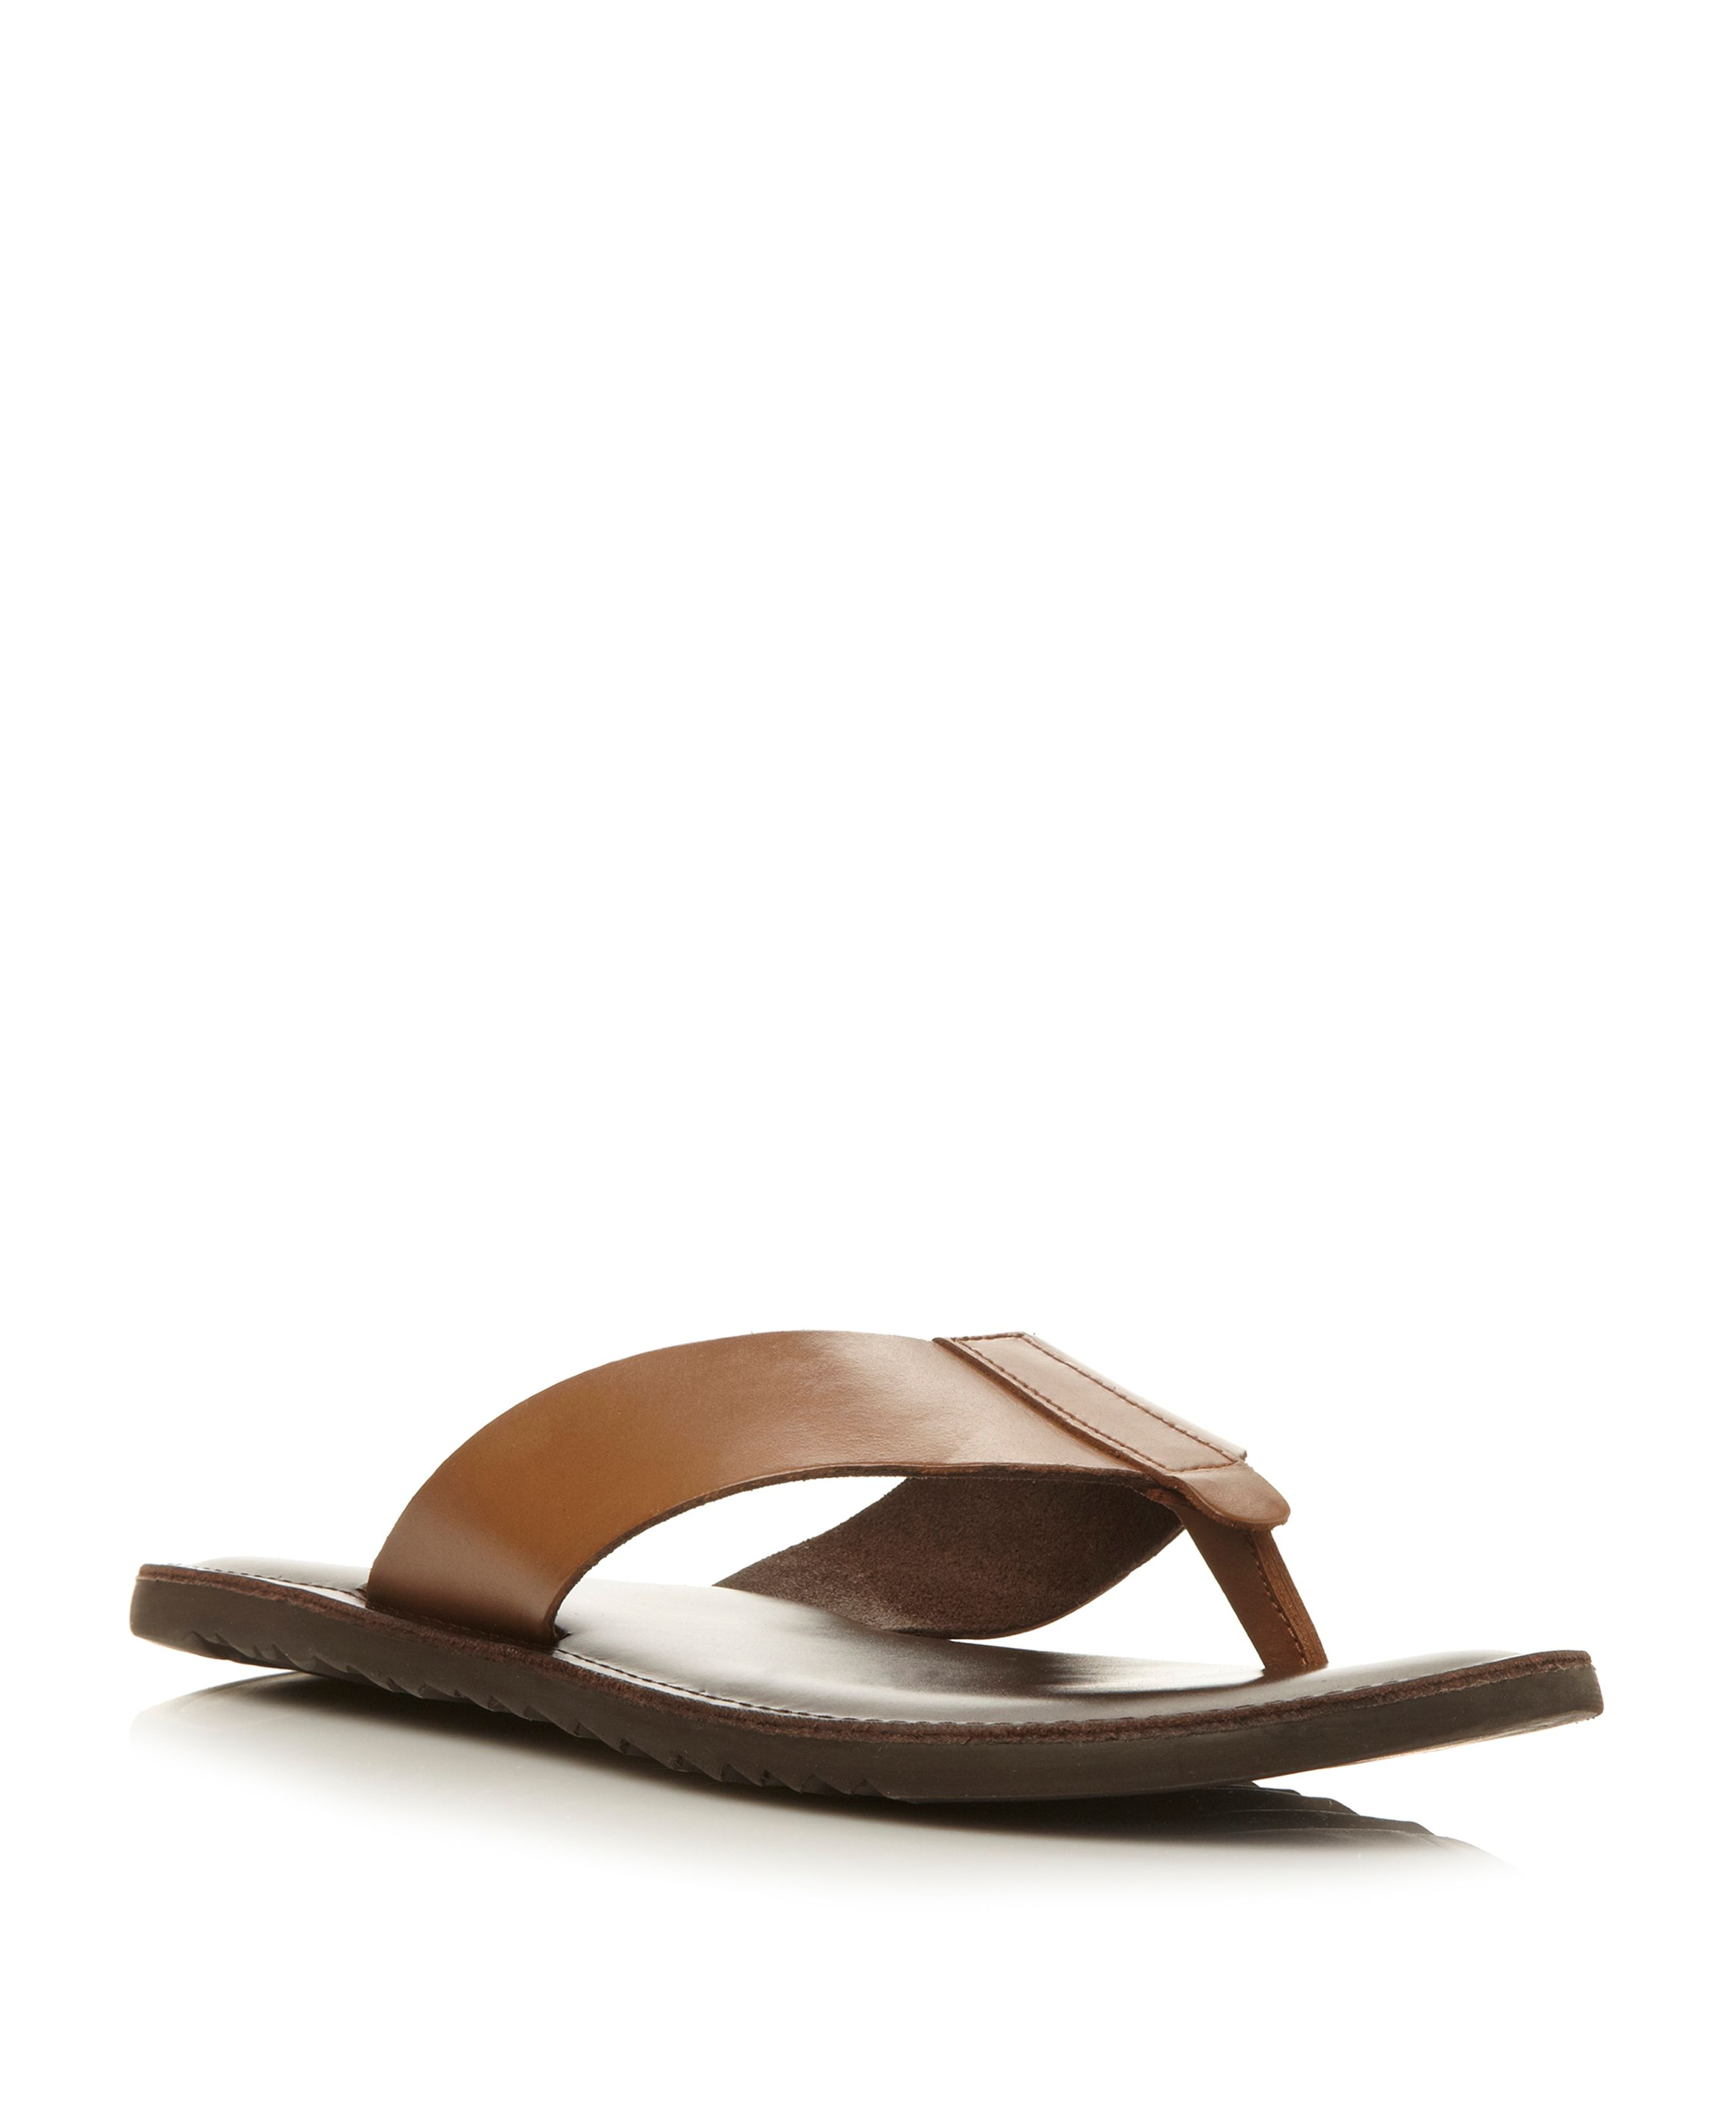 Inka trail leather toepost sandals